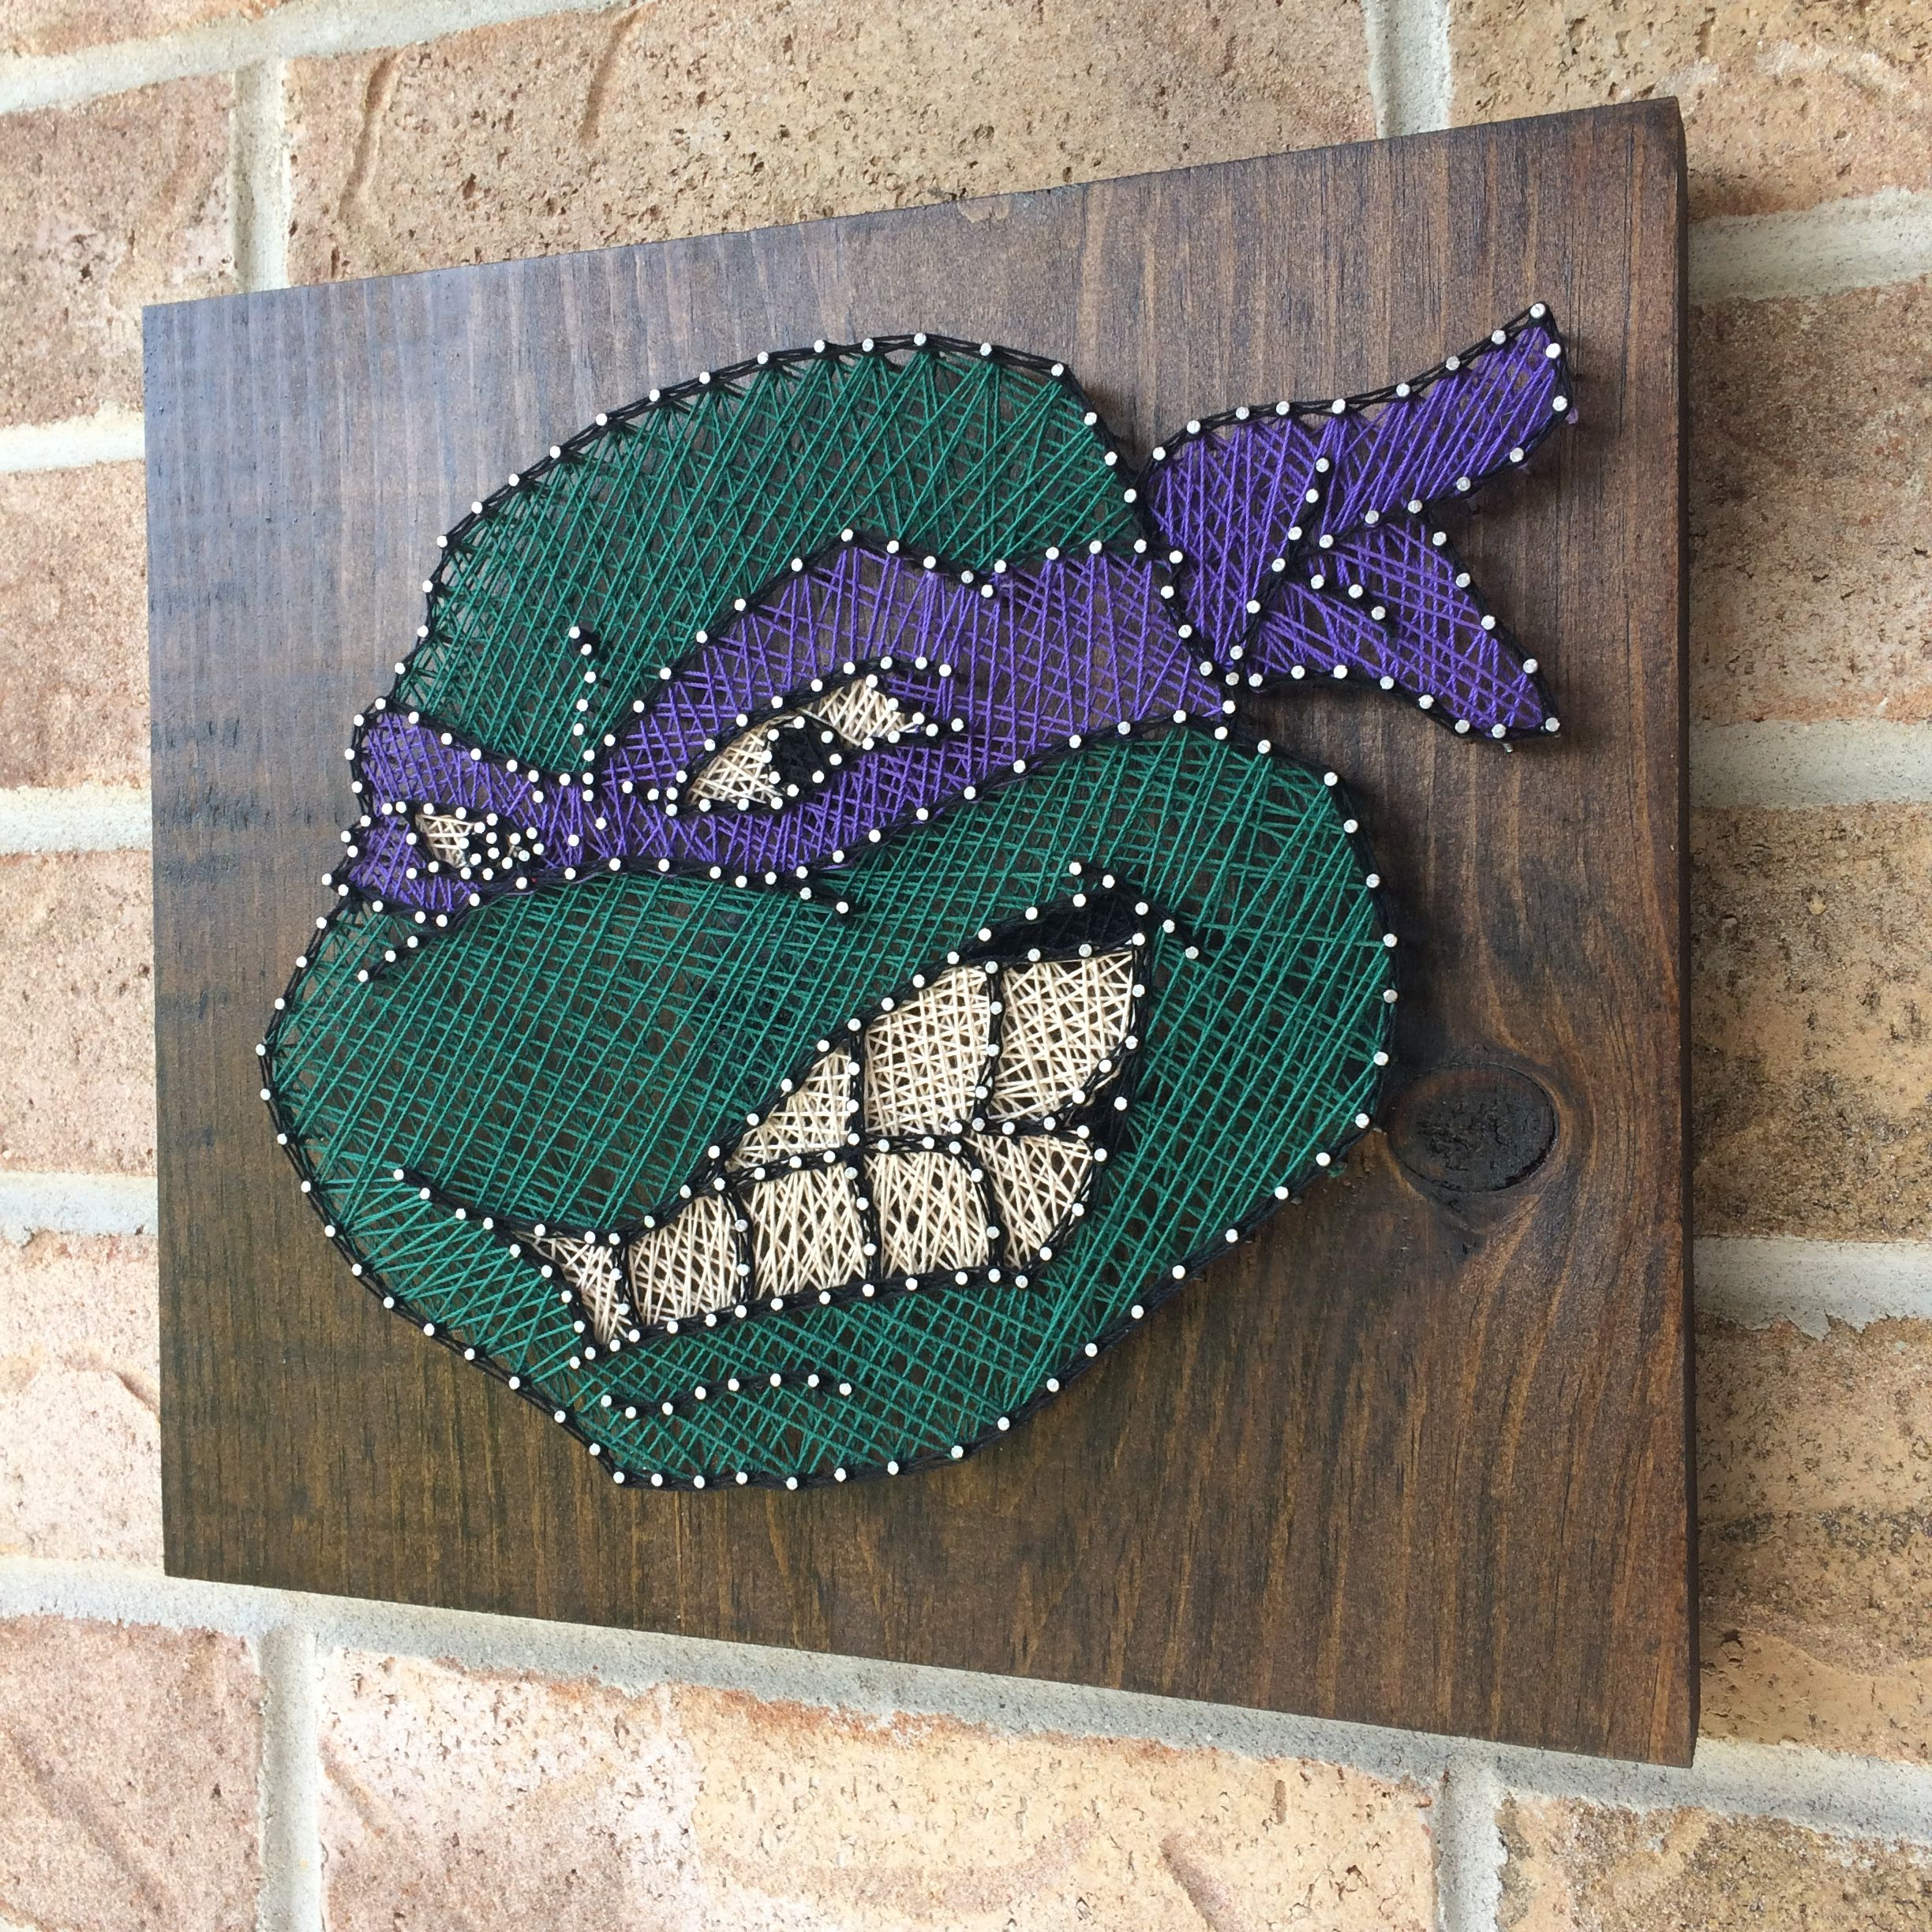 Tmnt String Art String Art Pinterest String Art Craft And